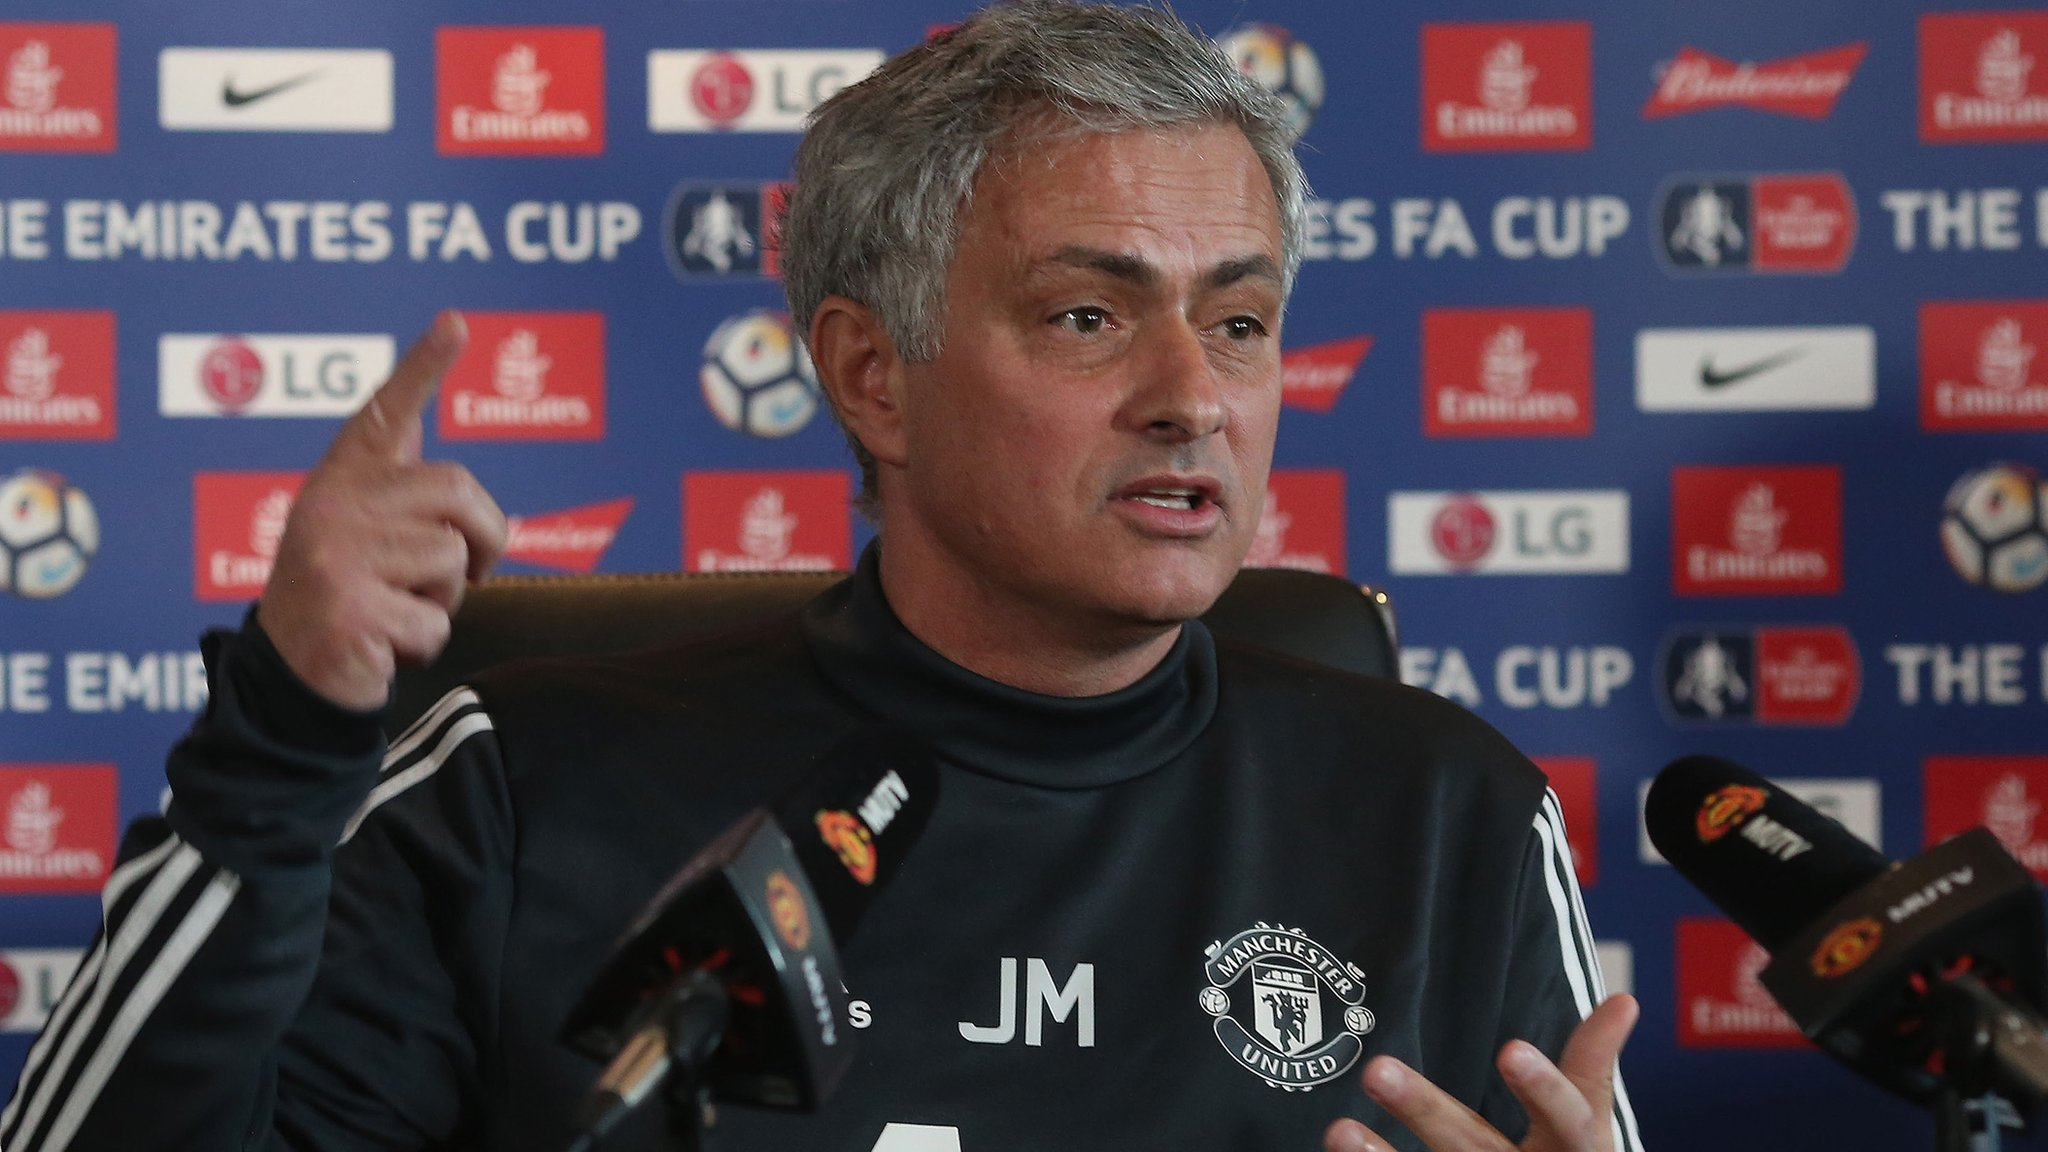 'I am alive' - Mourinho reacts to Champions League exit